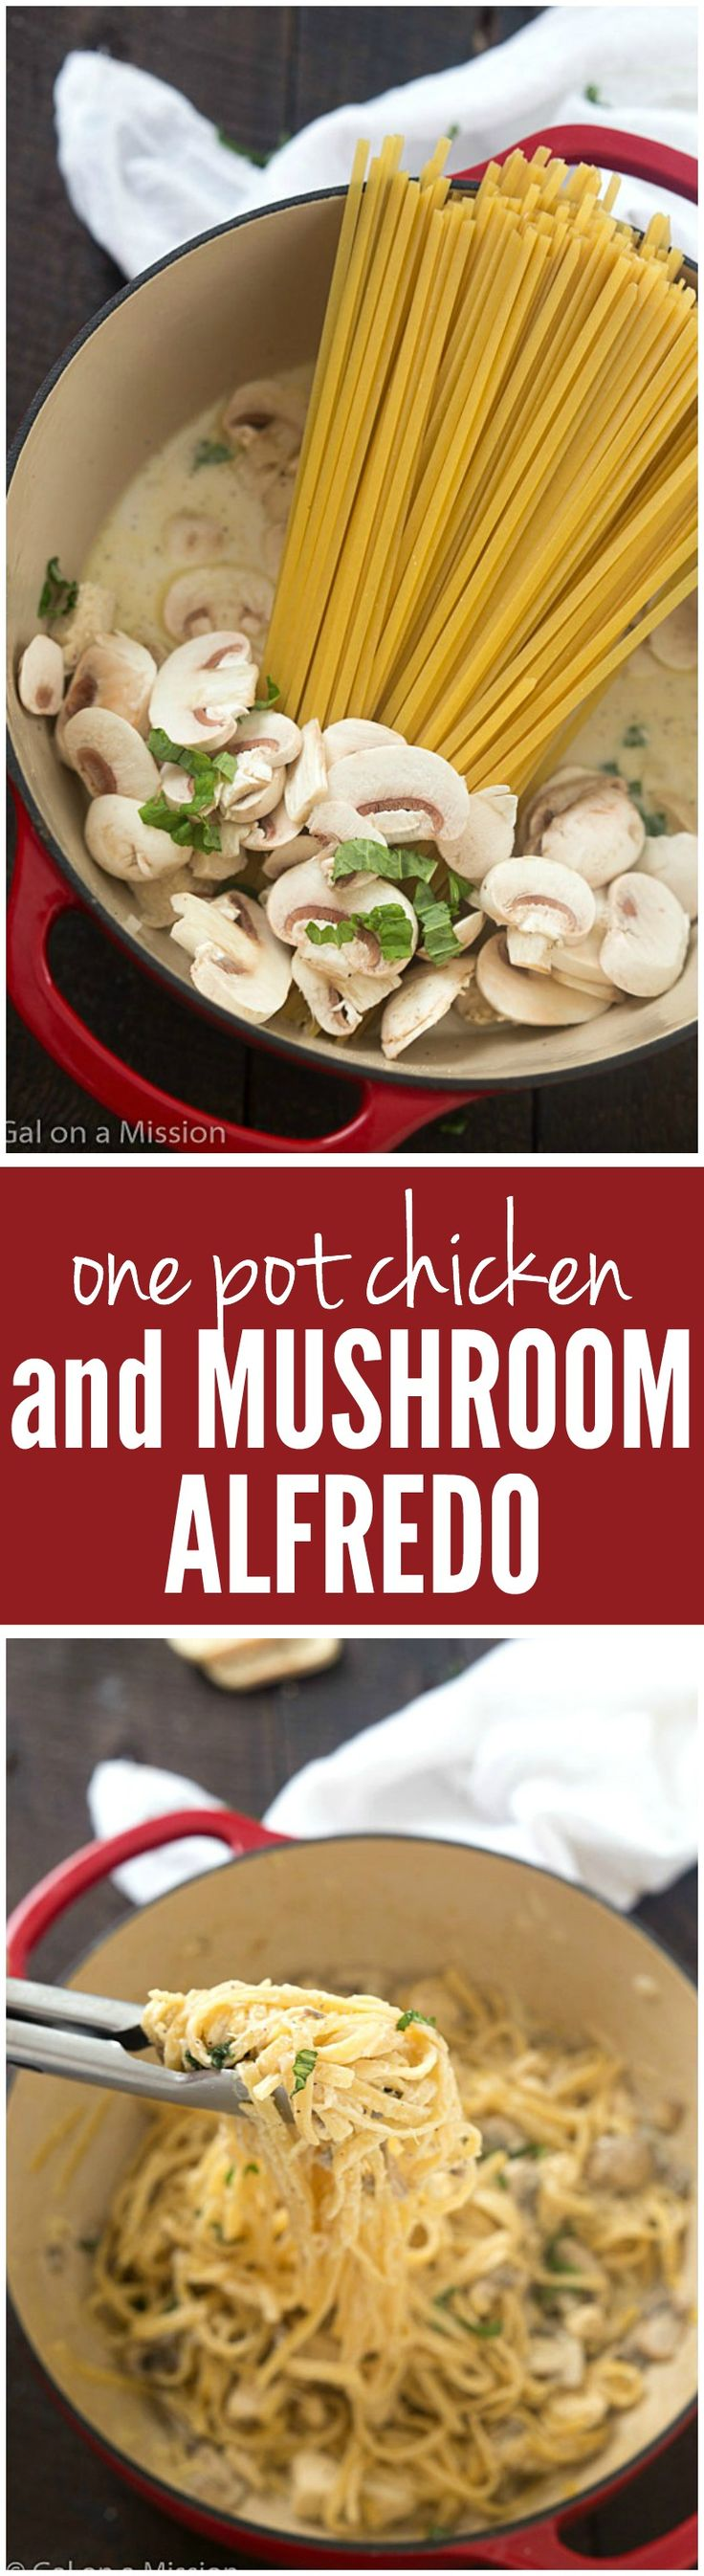 One-Pot Chicken and Mushroom Fettuccine Alfredo - A delicious and easy weeknight or weekend meal! Everything is simmered in just one pot, fewer dishes!